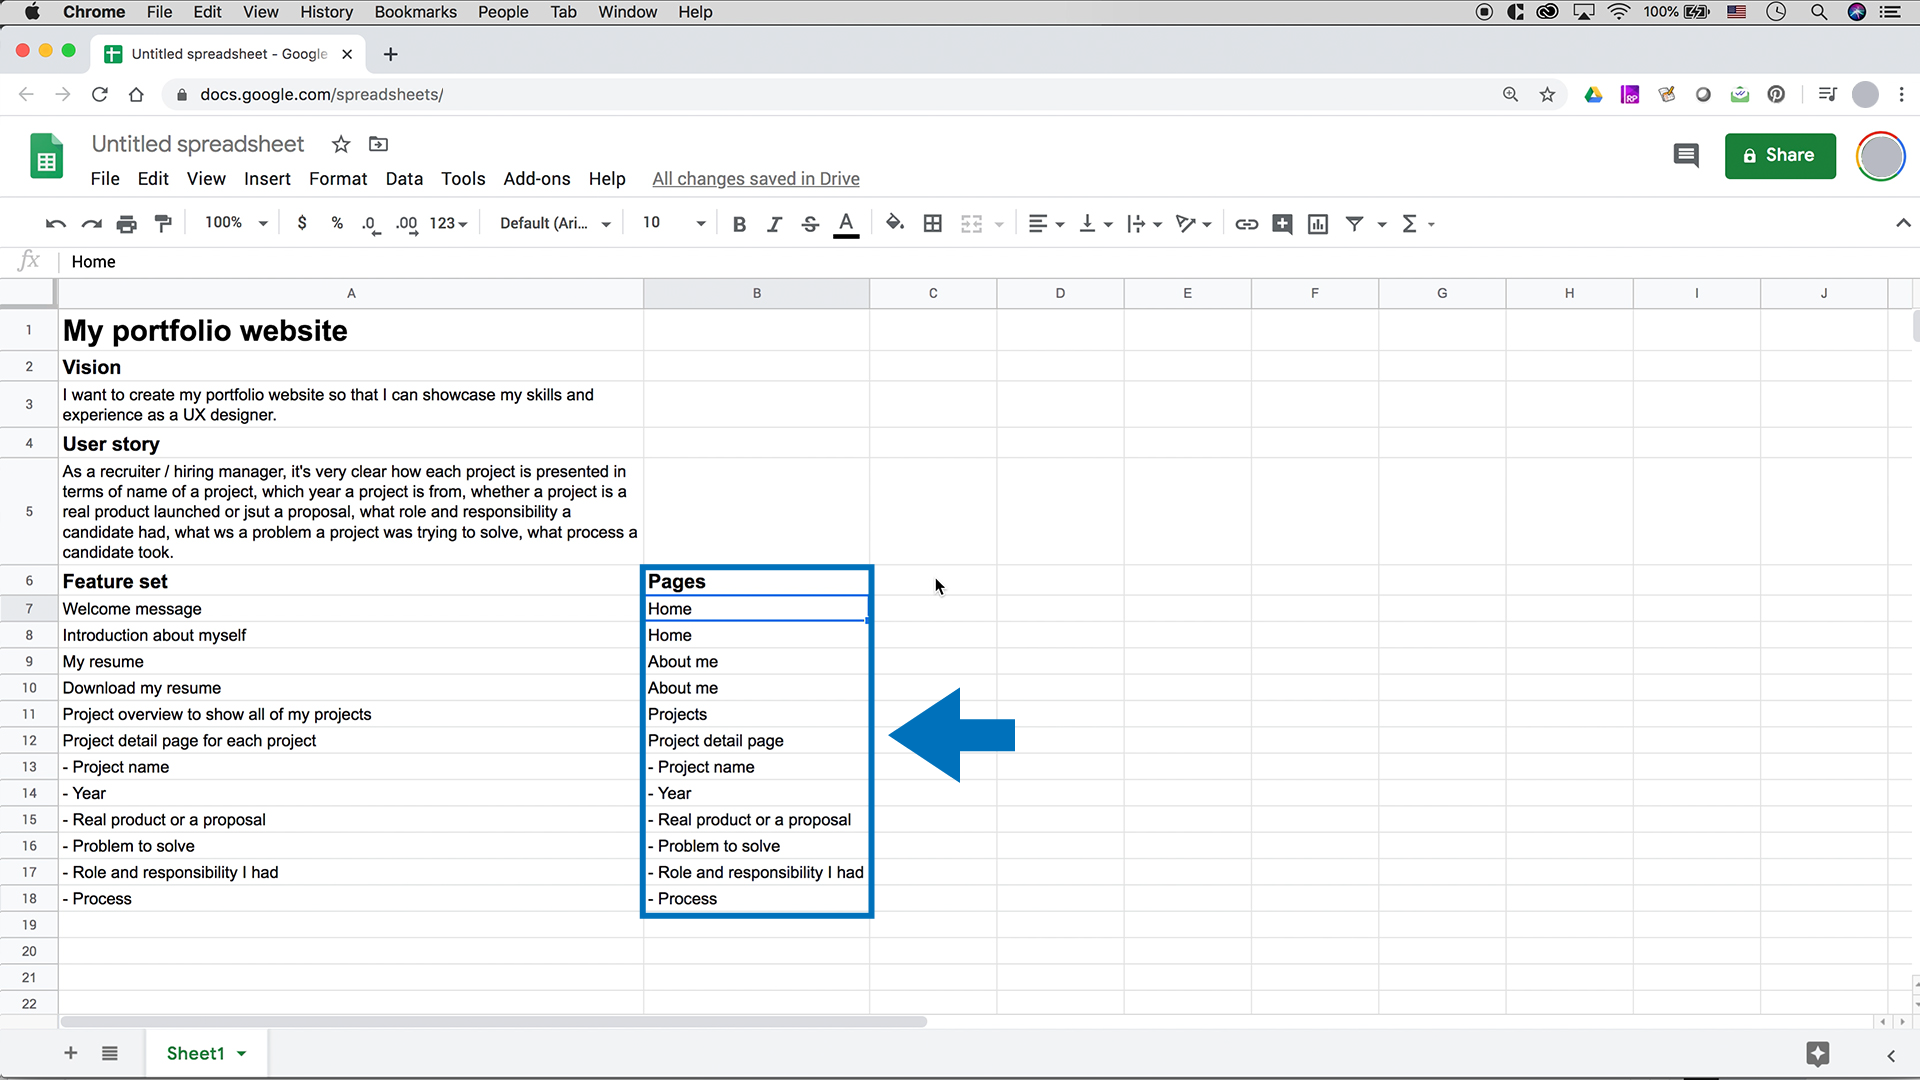 A screenshot of Google Sheets showing pages column is added which shows corresponding page for each feature set item.